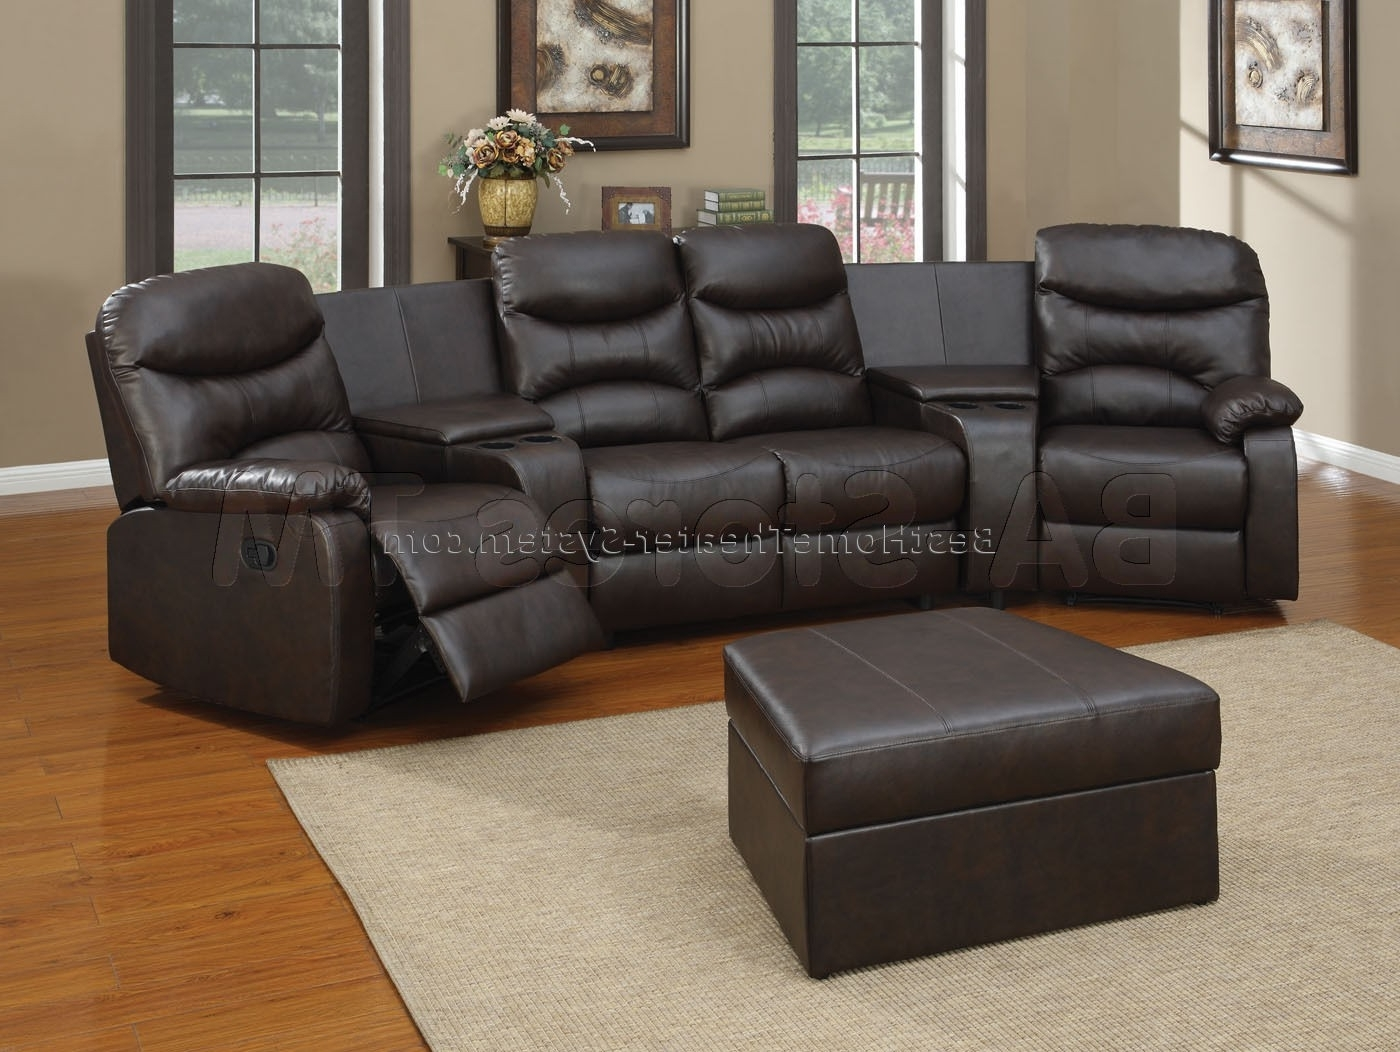 Widely Used Kanes Sectional Sofas With Awesome Sectional Sofa Theater Style – Mediasupload (View 20 of 20)